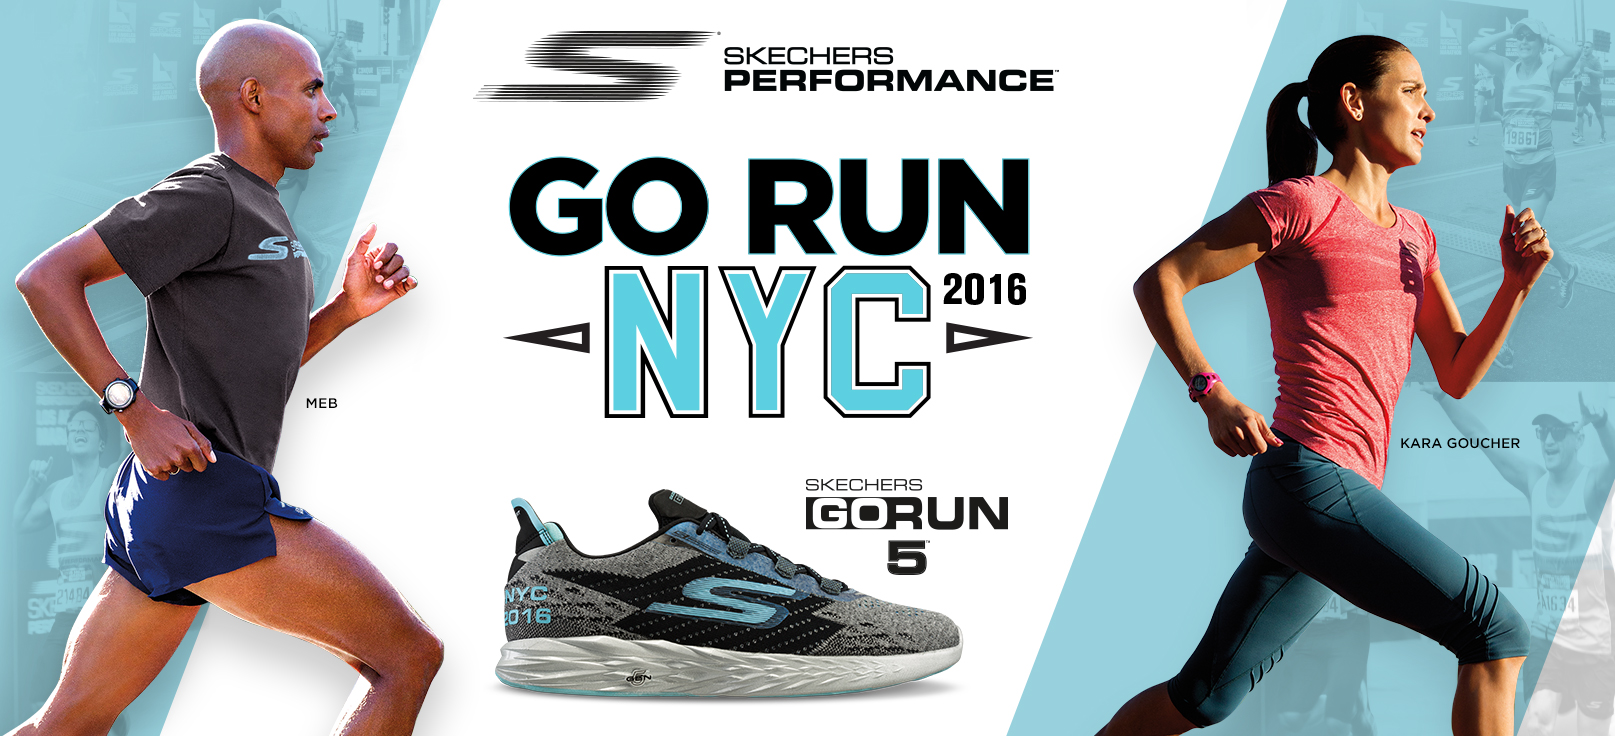 Skechers Performance shoes including Skechers GOwalk, GOrun and GO GOLF